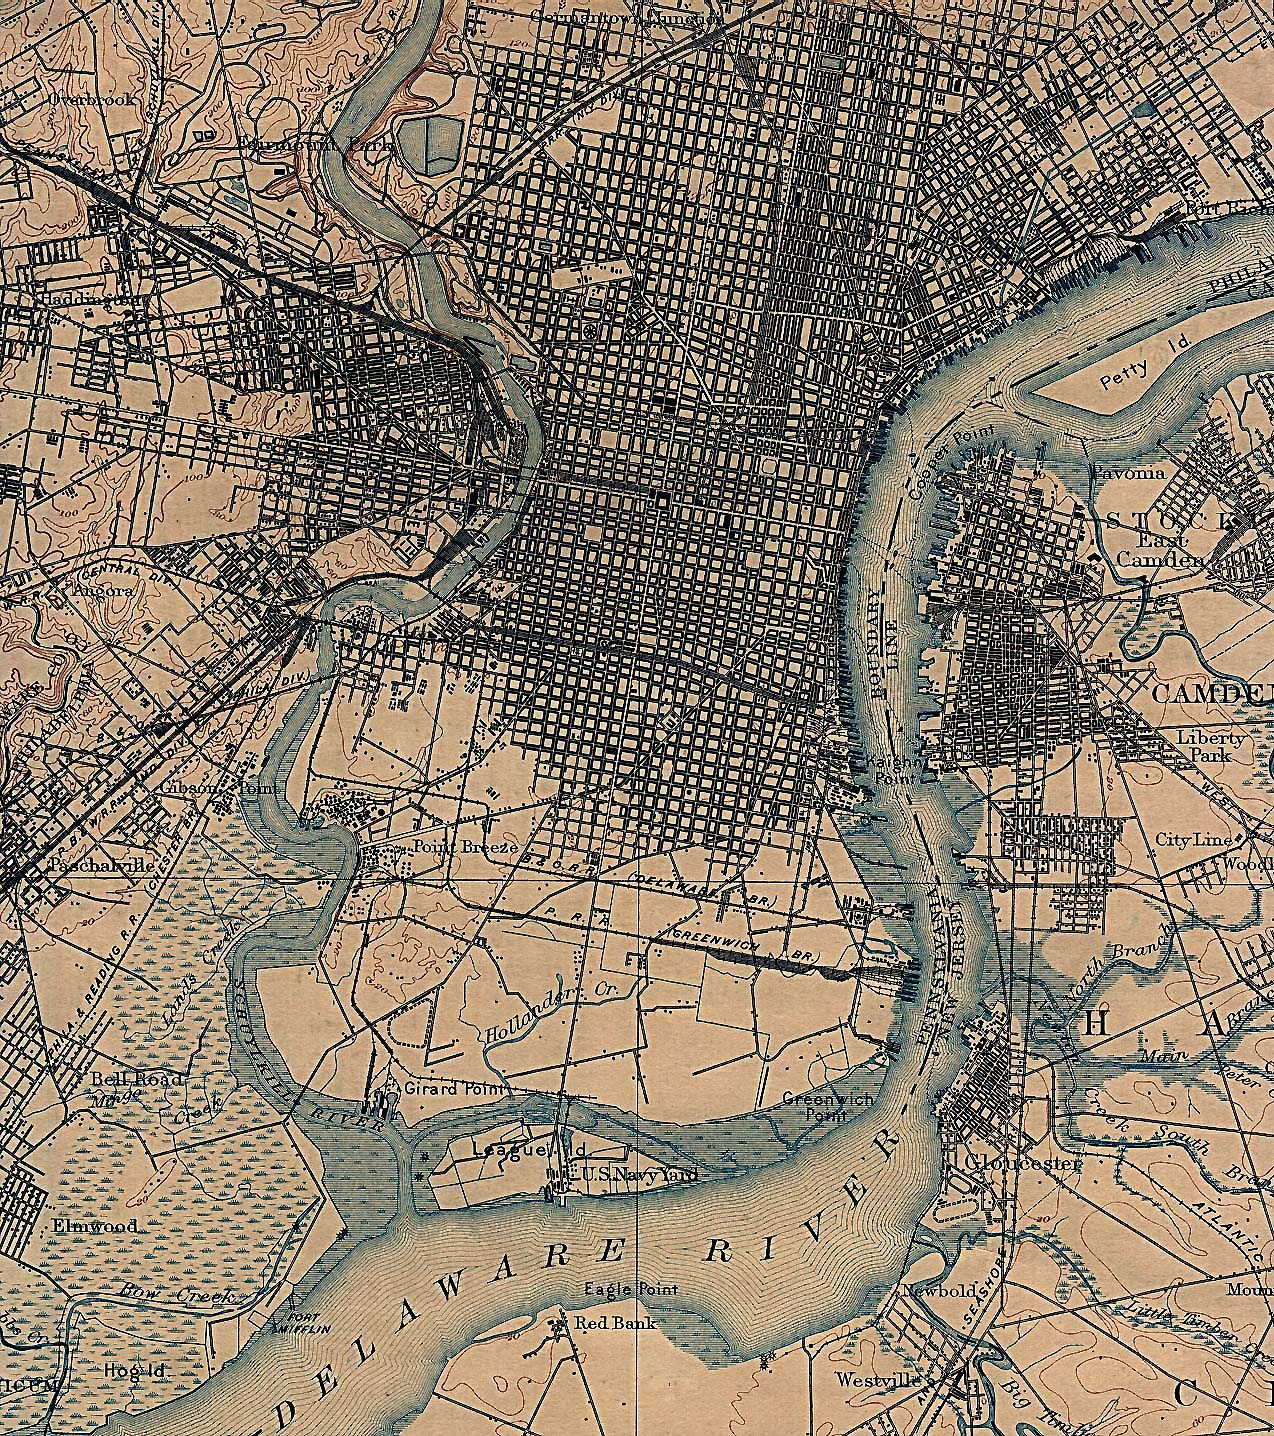 Historical Maps of U.S Cities. Philadelphia, Pennsylvania 1898 U.S. Geological Survey (1,029K)